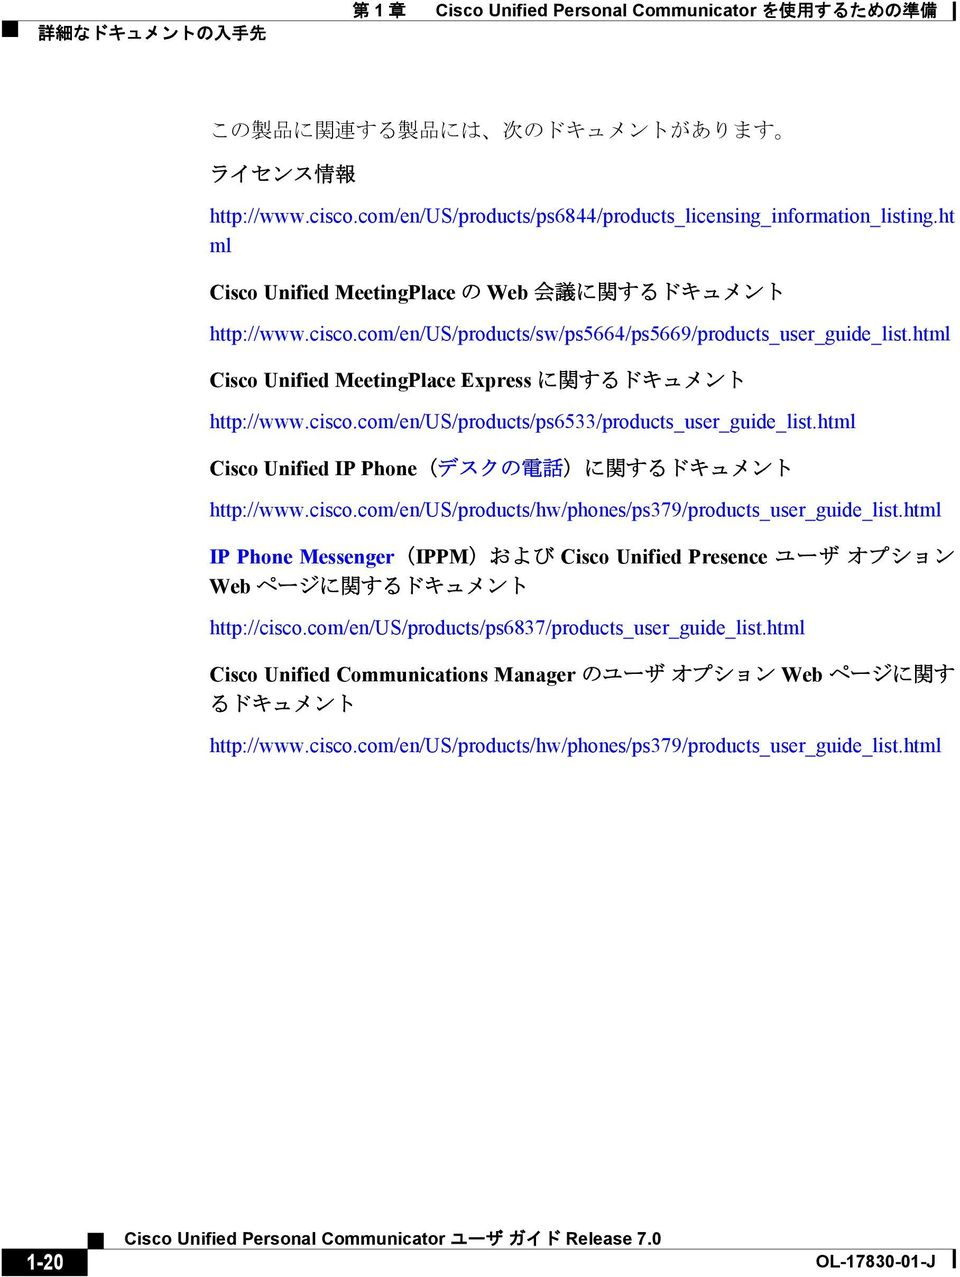 cisco.com/en/us/products/ps6533/products_user_guide_list.html Cisco Unified IP Phone(デスクの 電 話 )に 関 するドキュメント http://www.cisco.com/en/us/products/hw/phones/ps379/products_user_guide_list.